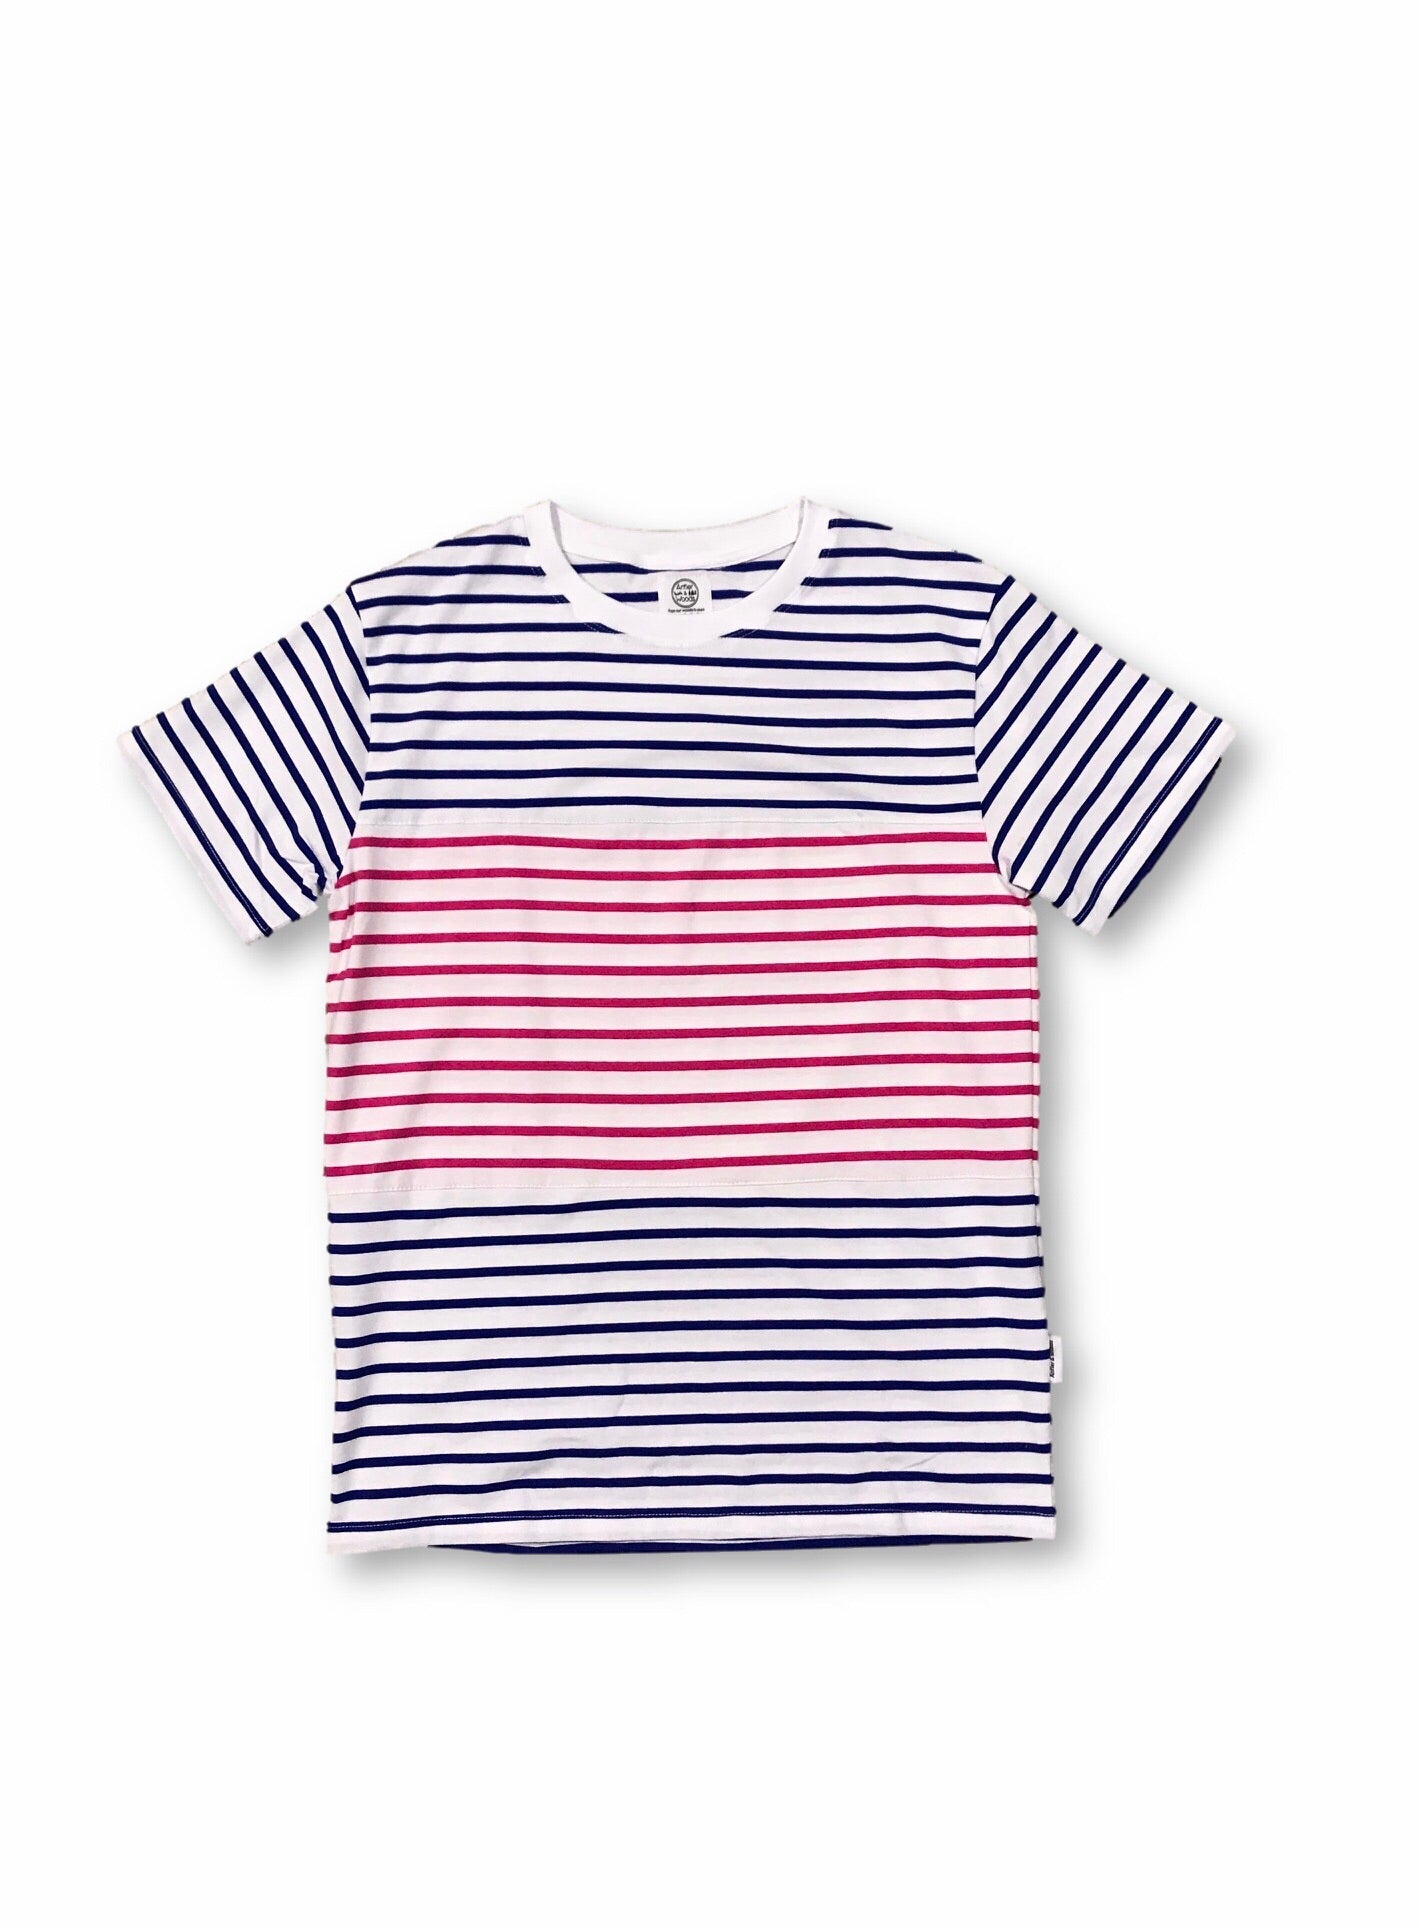 Sawyer Striped Tee - Blue/Pink